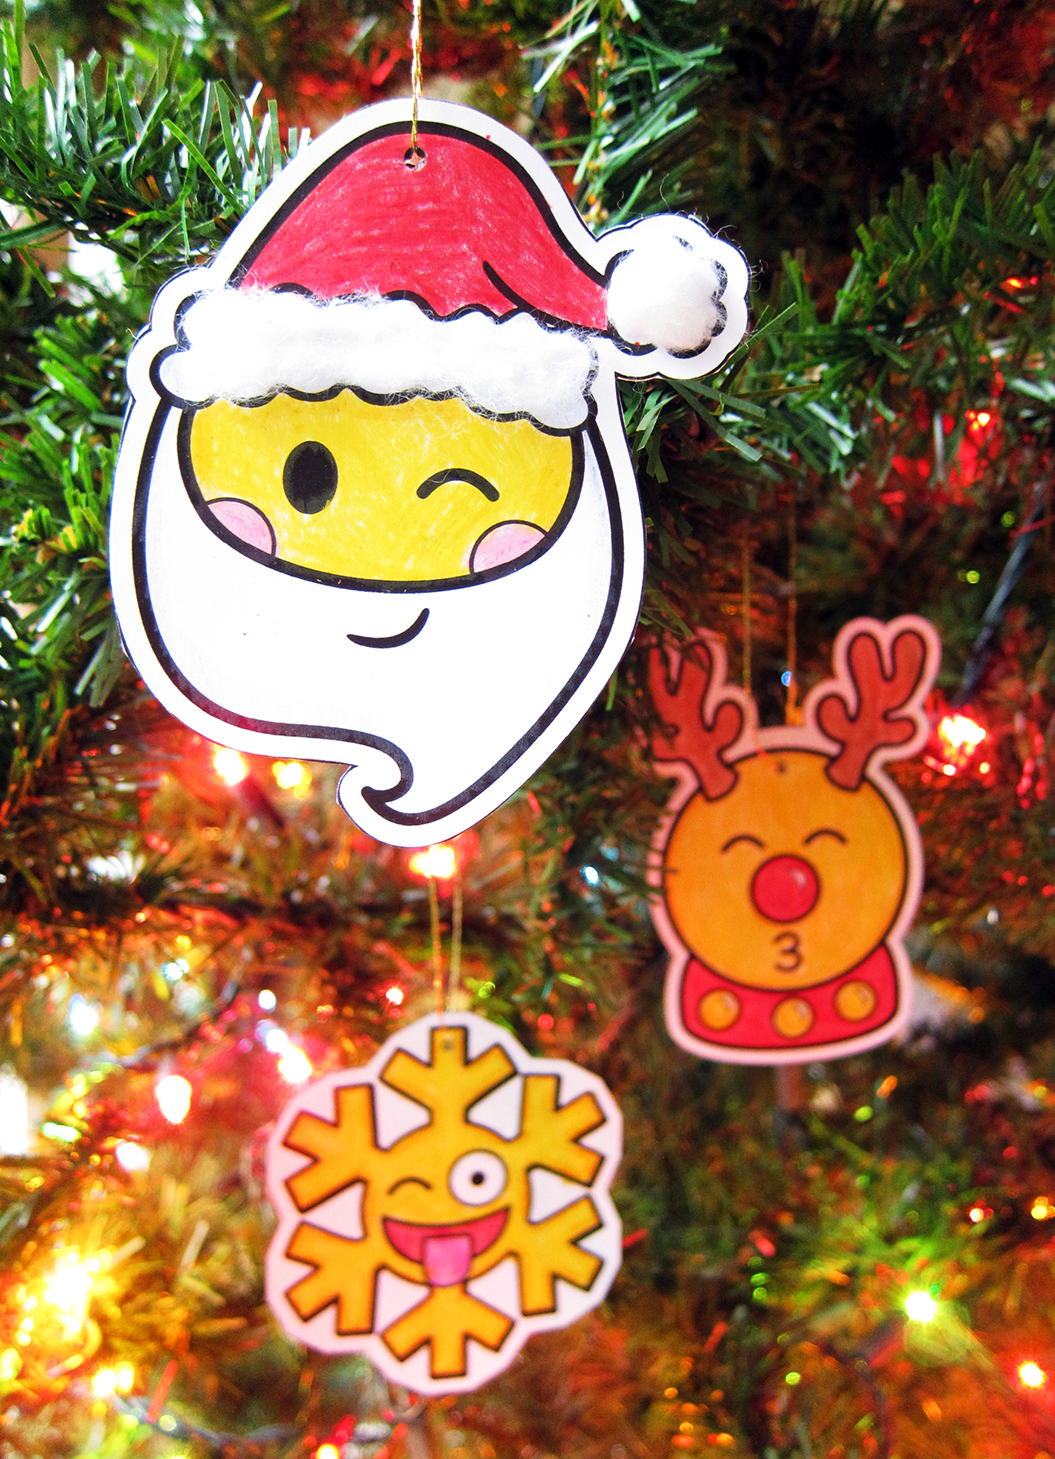 Make Fun Christmas Decorations With These Adorable Emoji